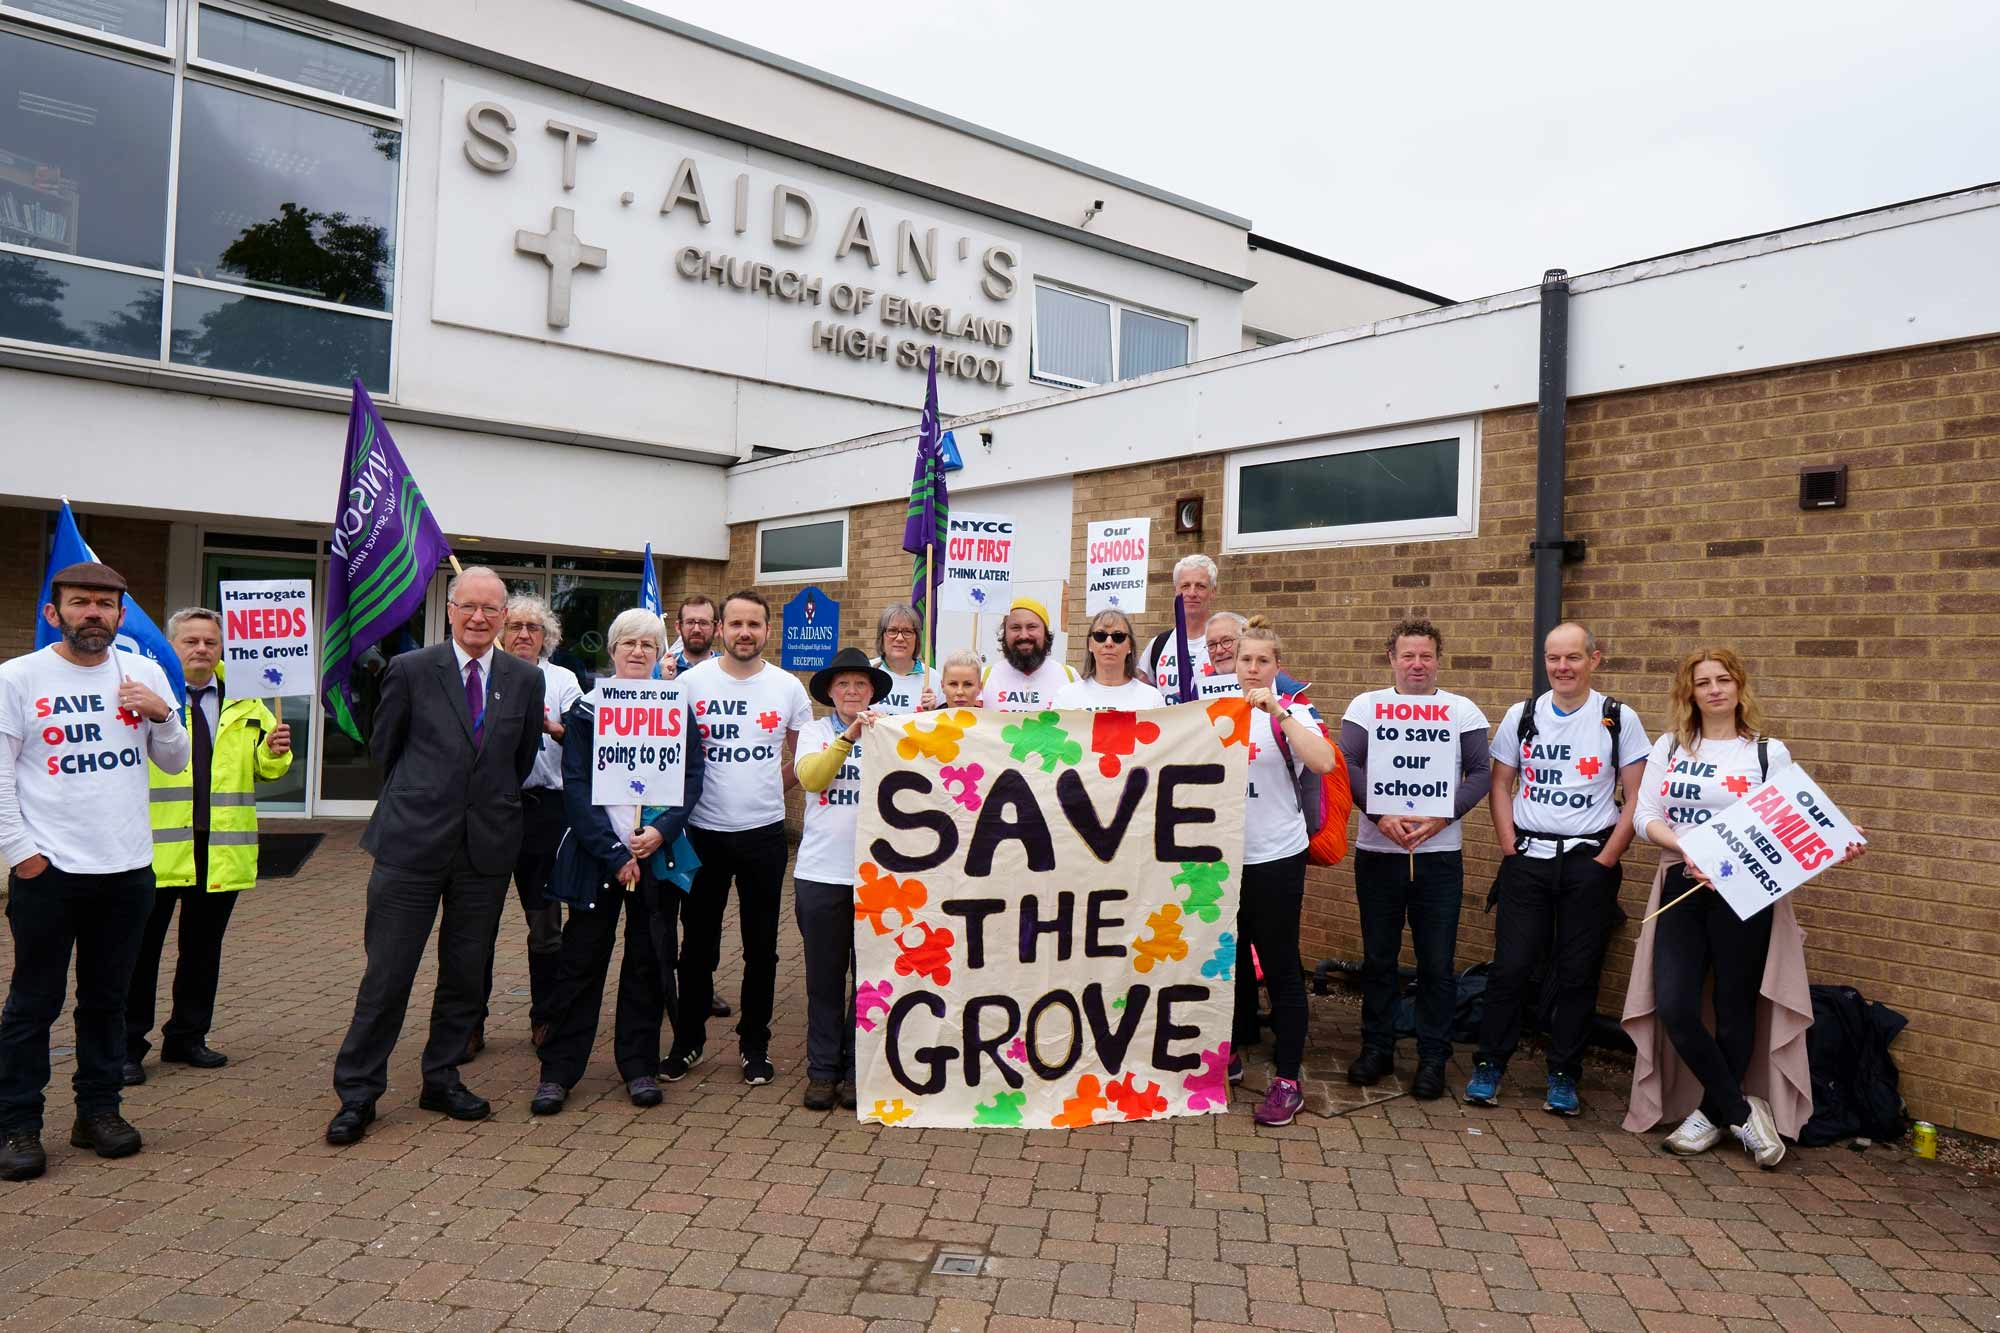 Save the Grove campaign at S Aidans Harrogate